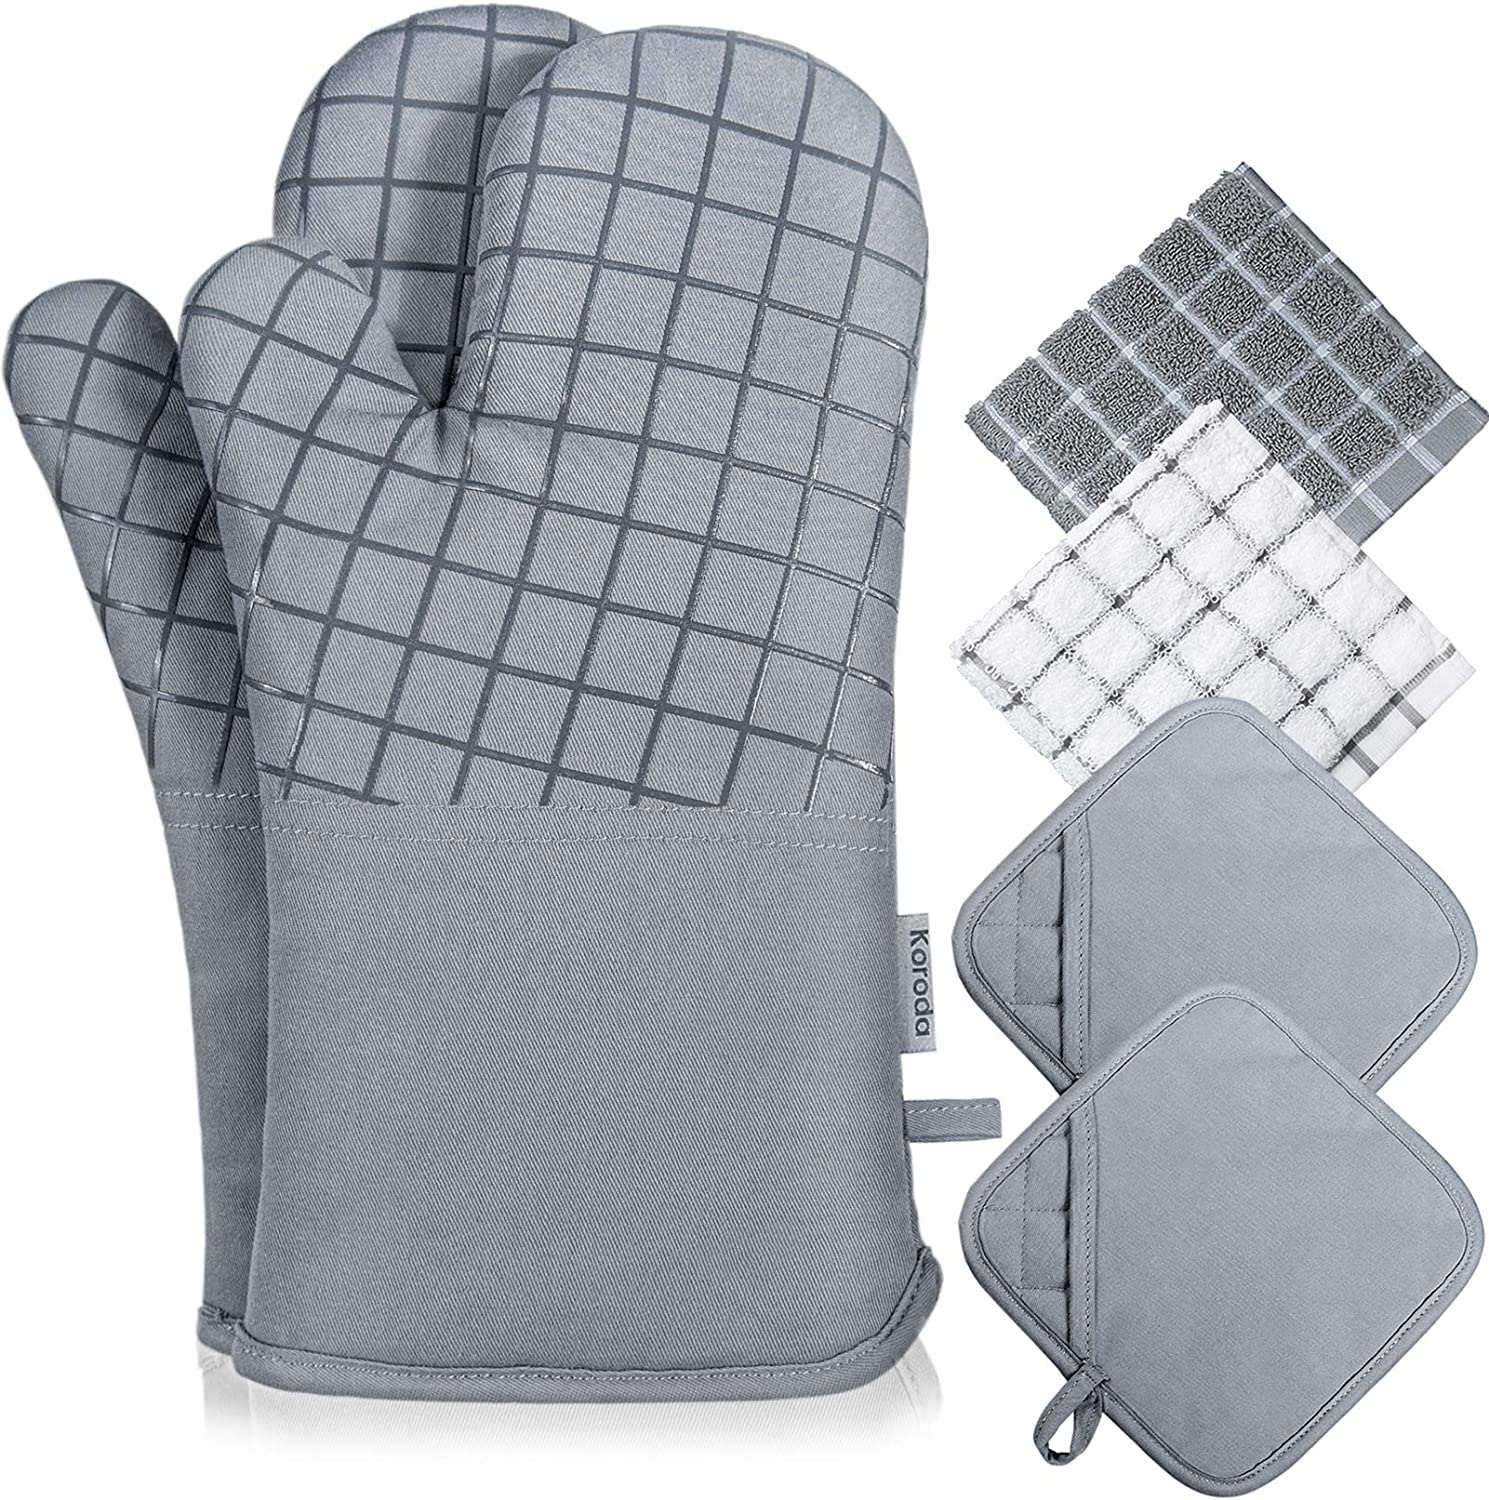 Koroda Oven Mitts and Pot Holders Sets: 550°F High Heat Resistant Oven Mitts with Kitchen Towels Thick Cotton Oven Gloves with Non-Slip Silicone for Cooking and Baking (6Pcs, Grey): Kitchen & Dining